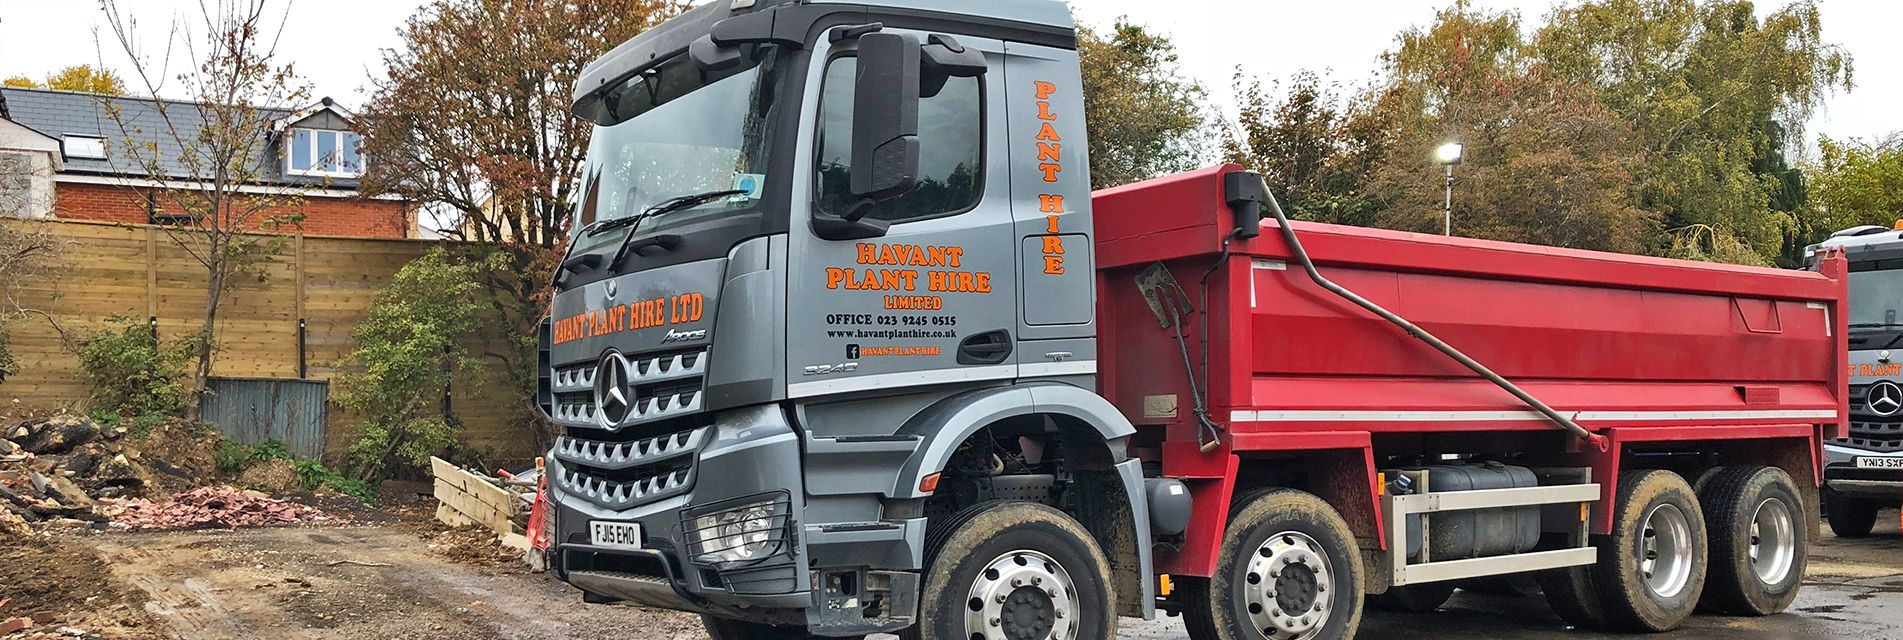 Haulage Transport Hire Hawkley